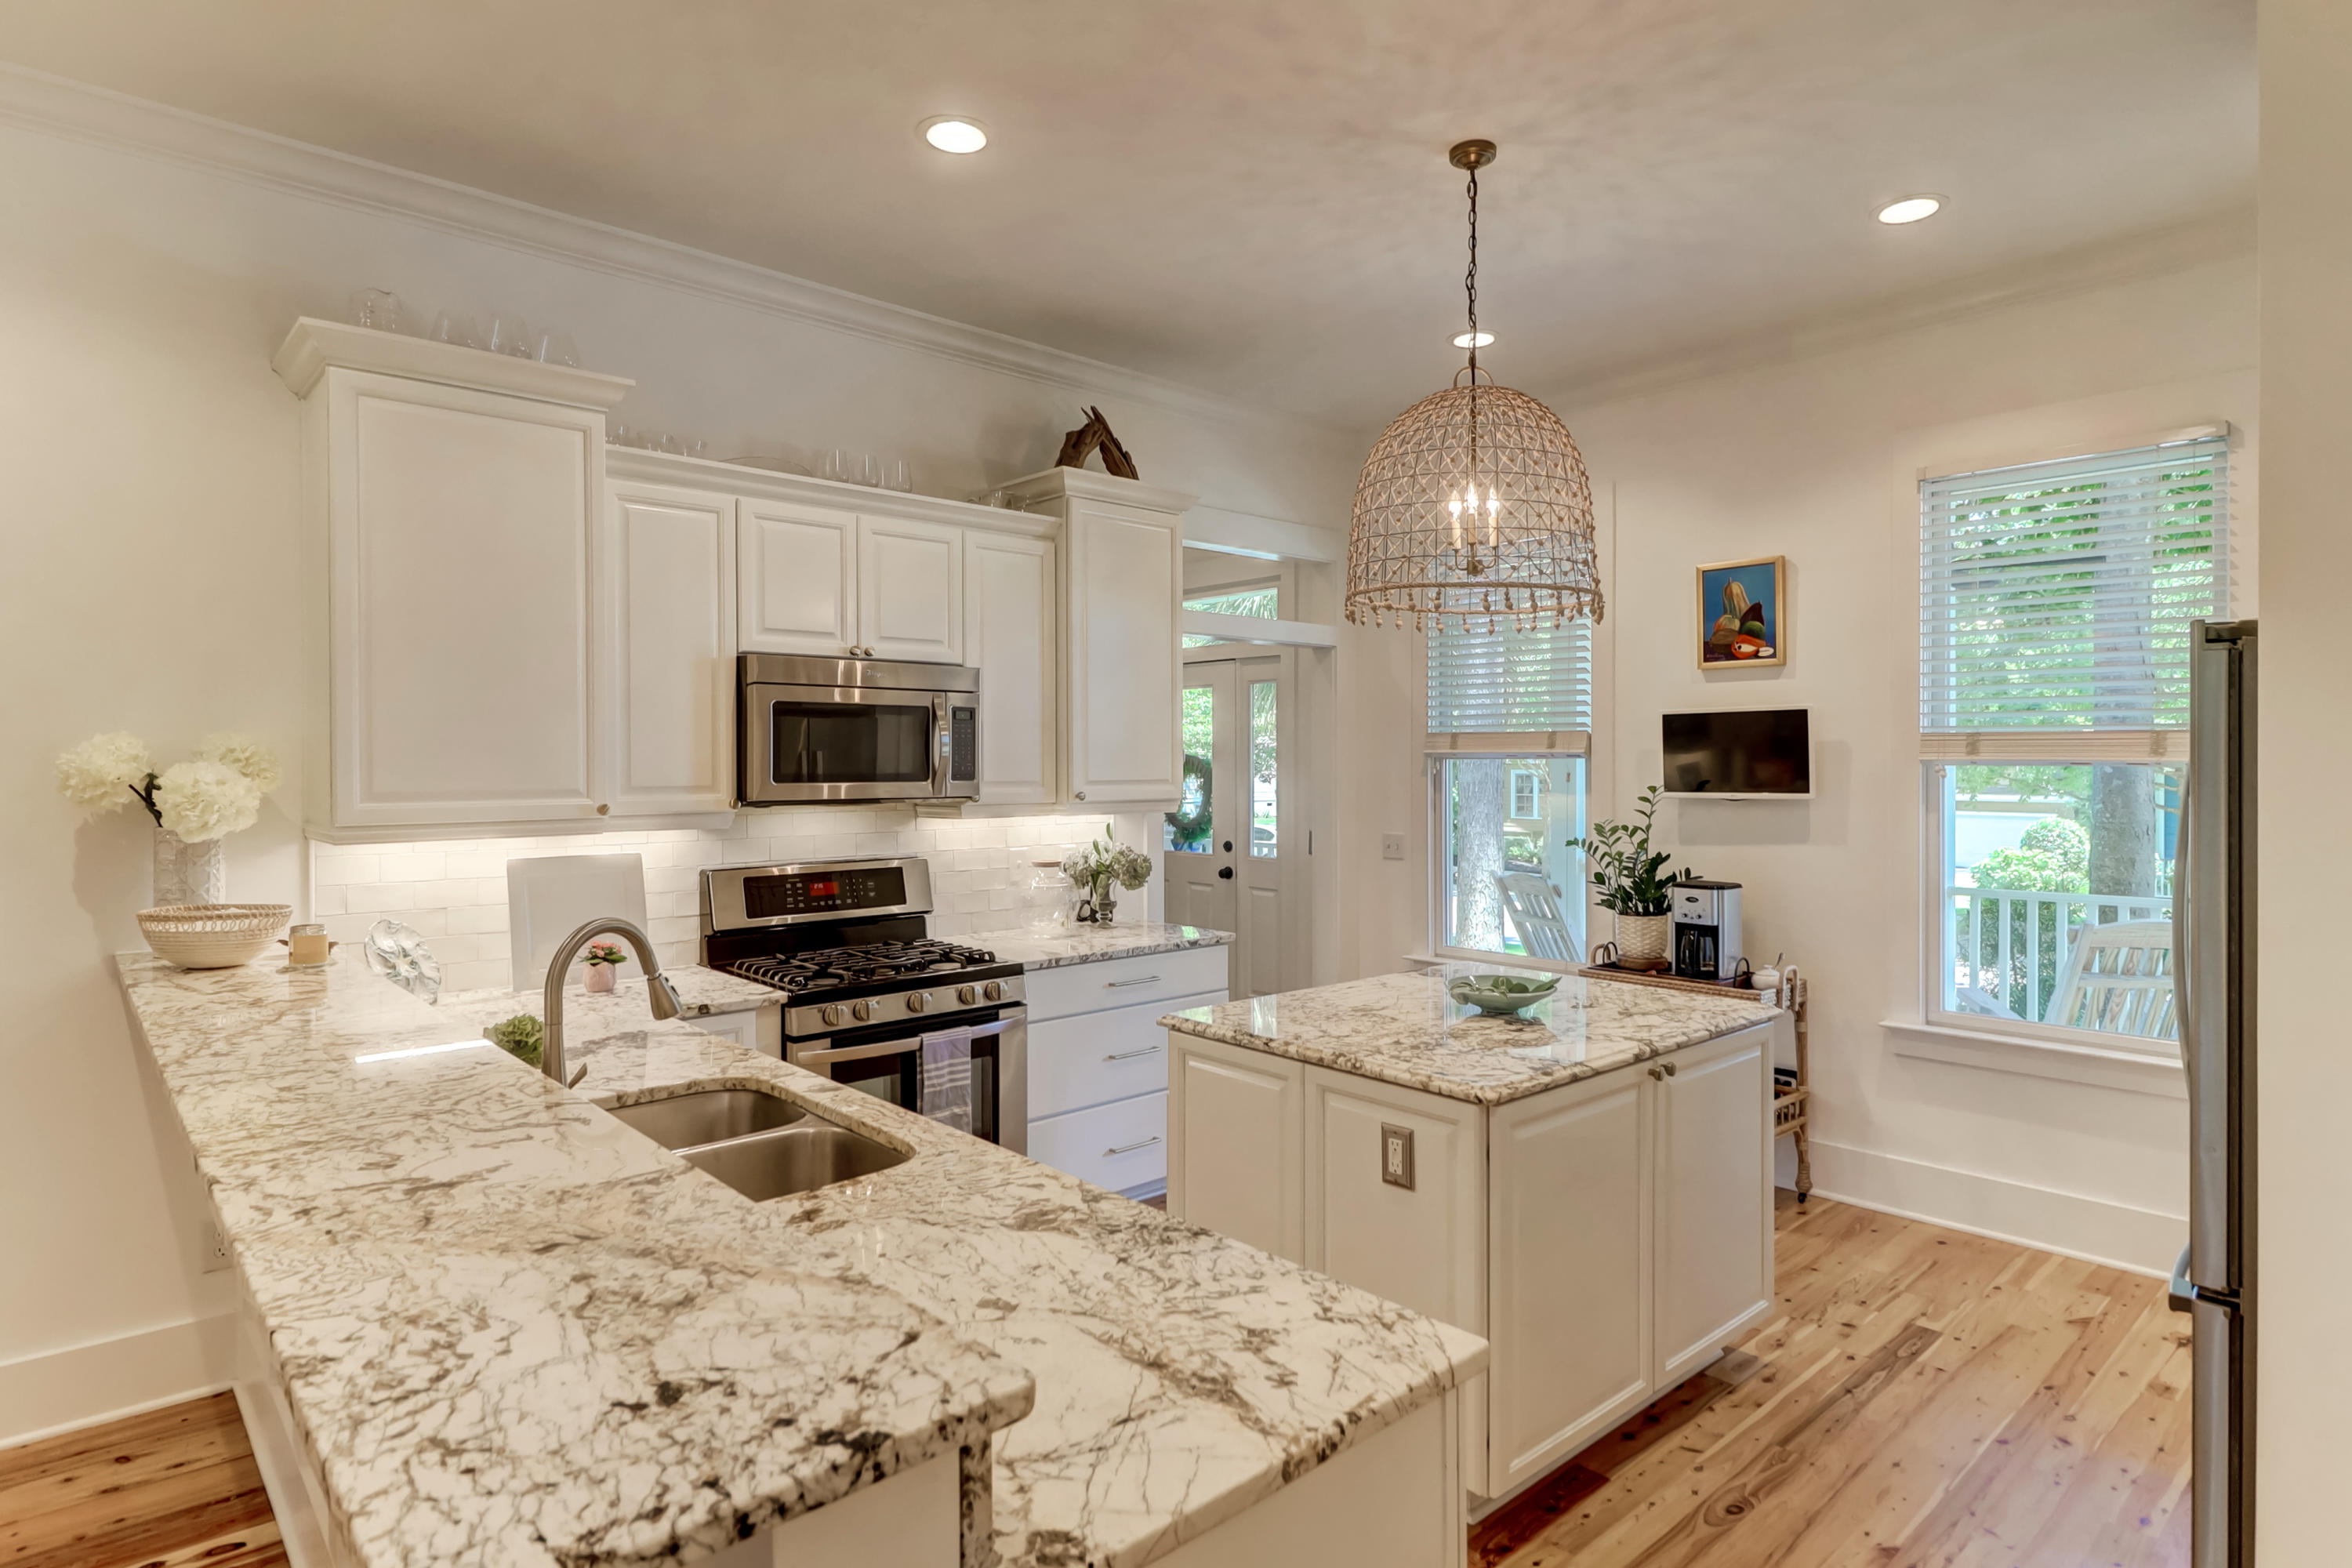 The Villages In St Johns Woods Homes For Sale - 5056 Coral Reef Dr, Johns Island, SC - 60